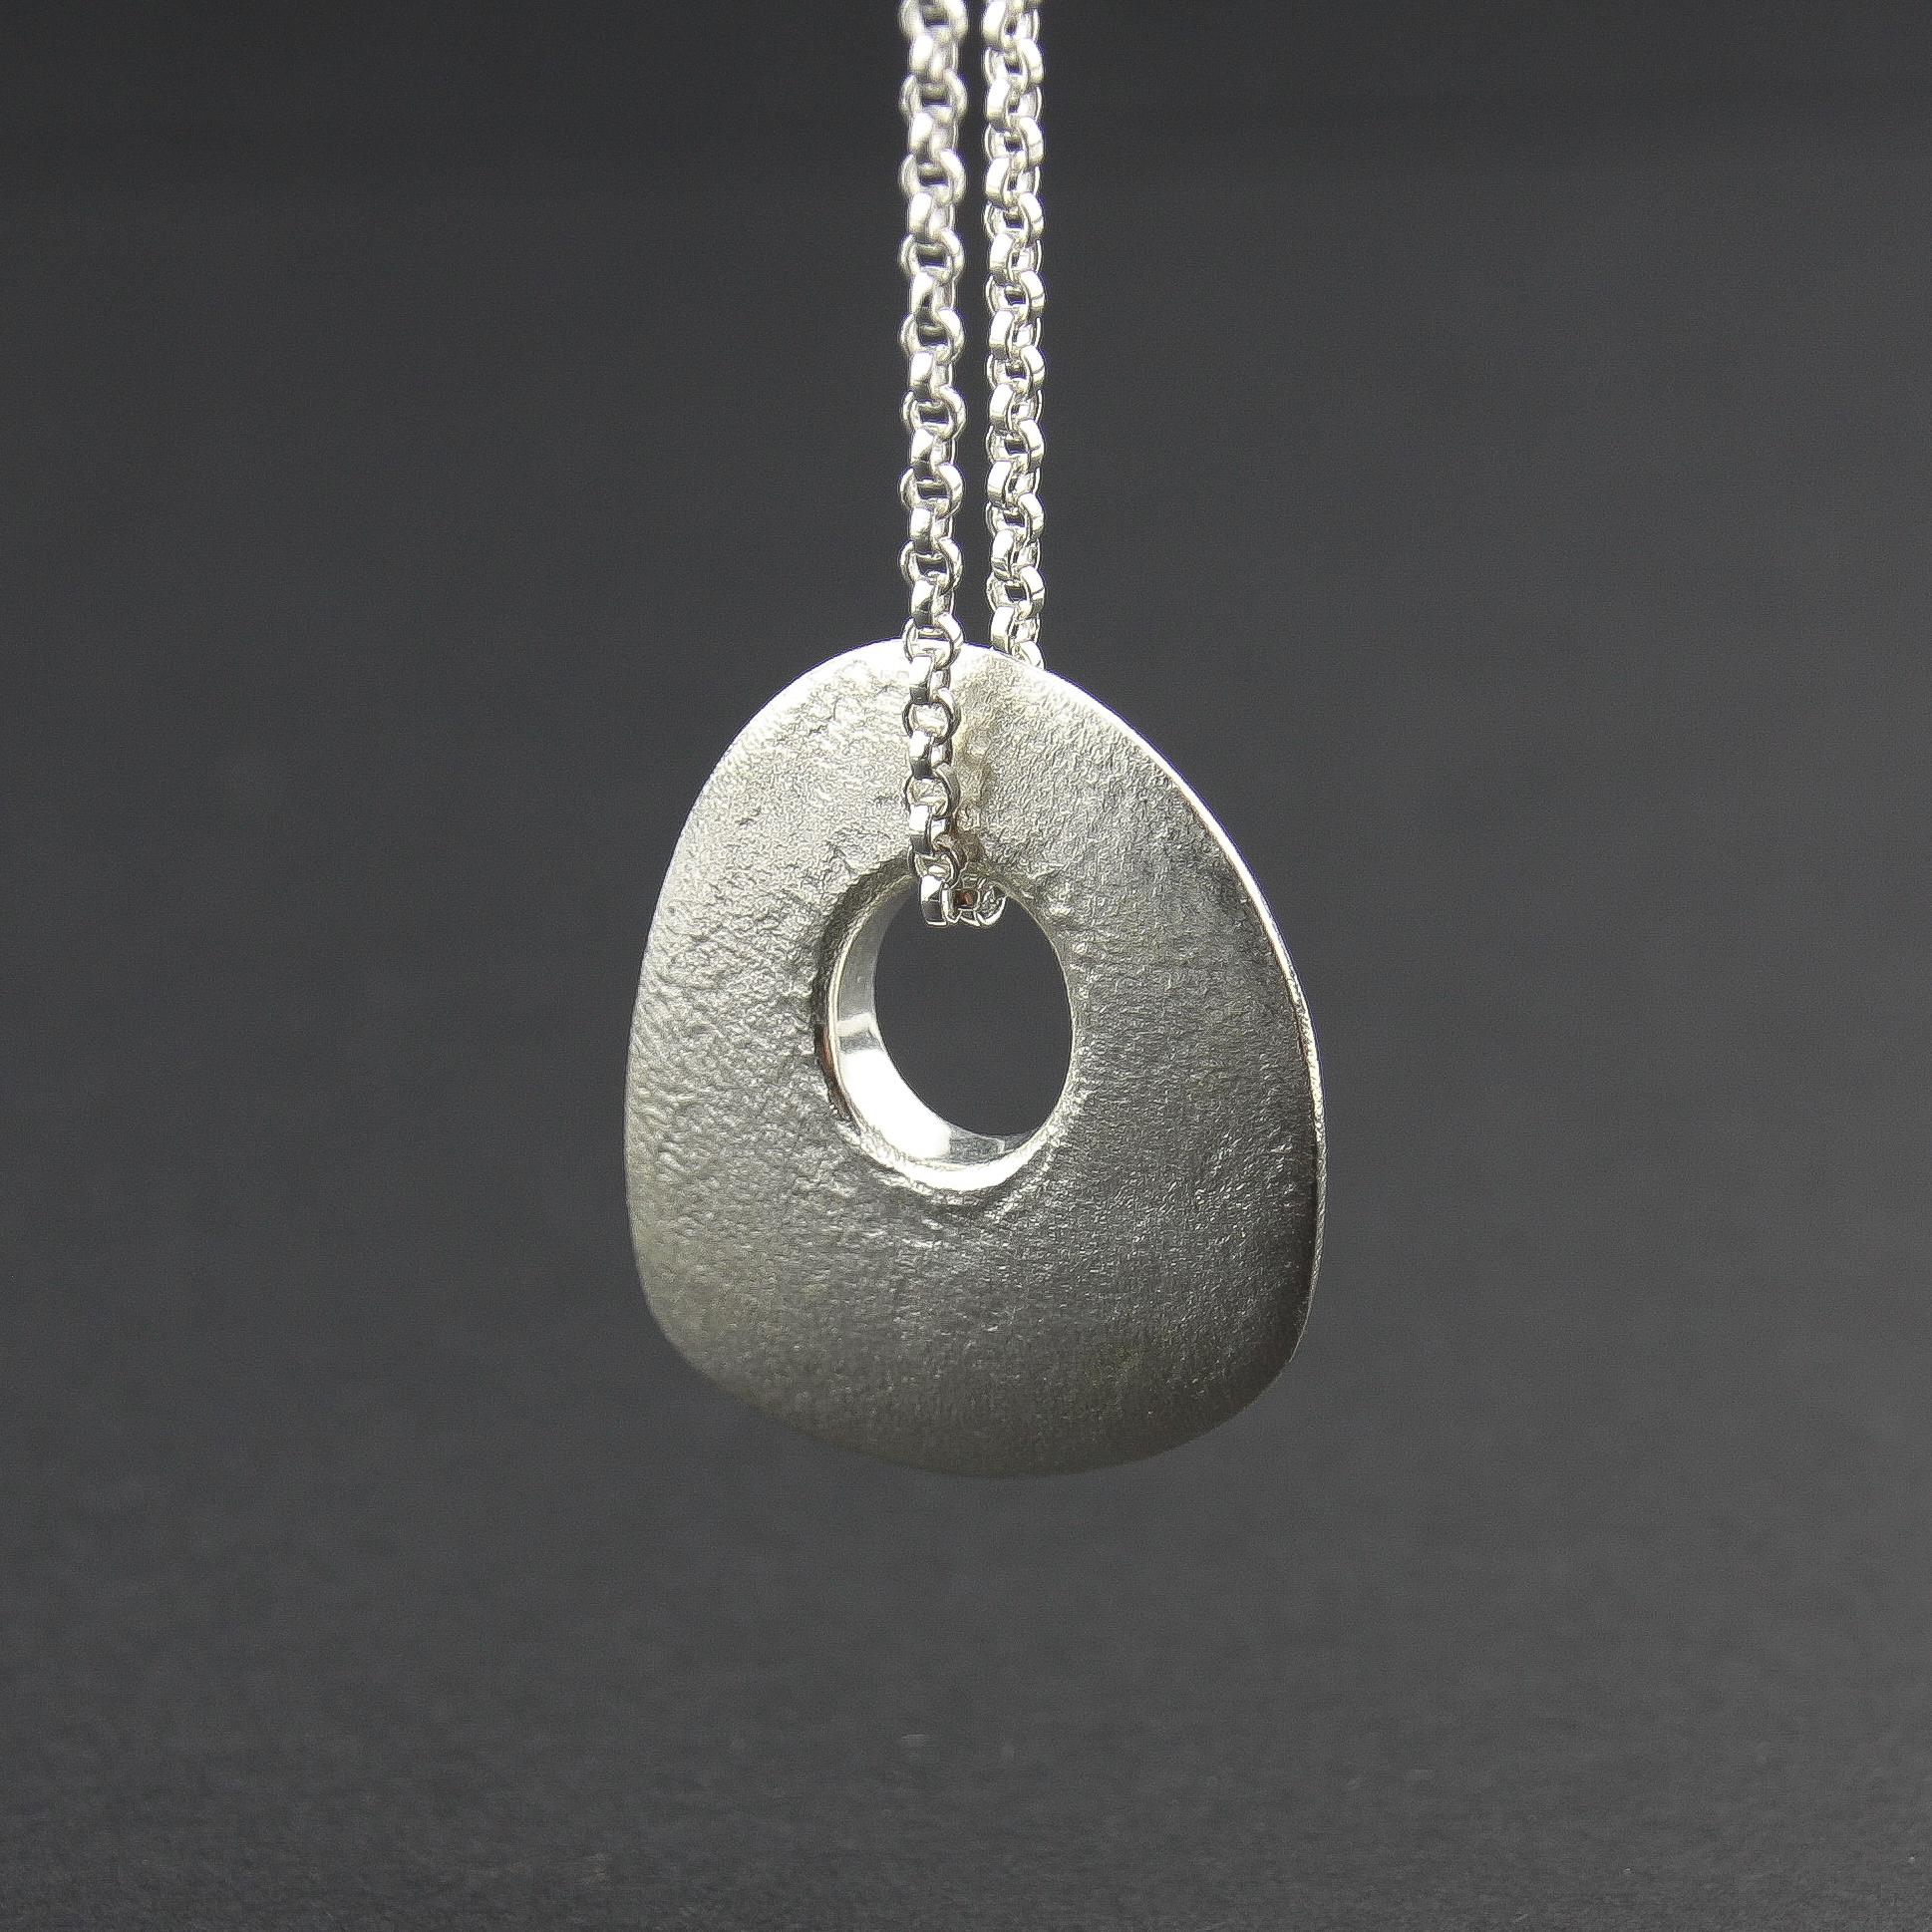 Leonie Simpson Jewellery pebble large skipping pebble pendant sterling silver